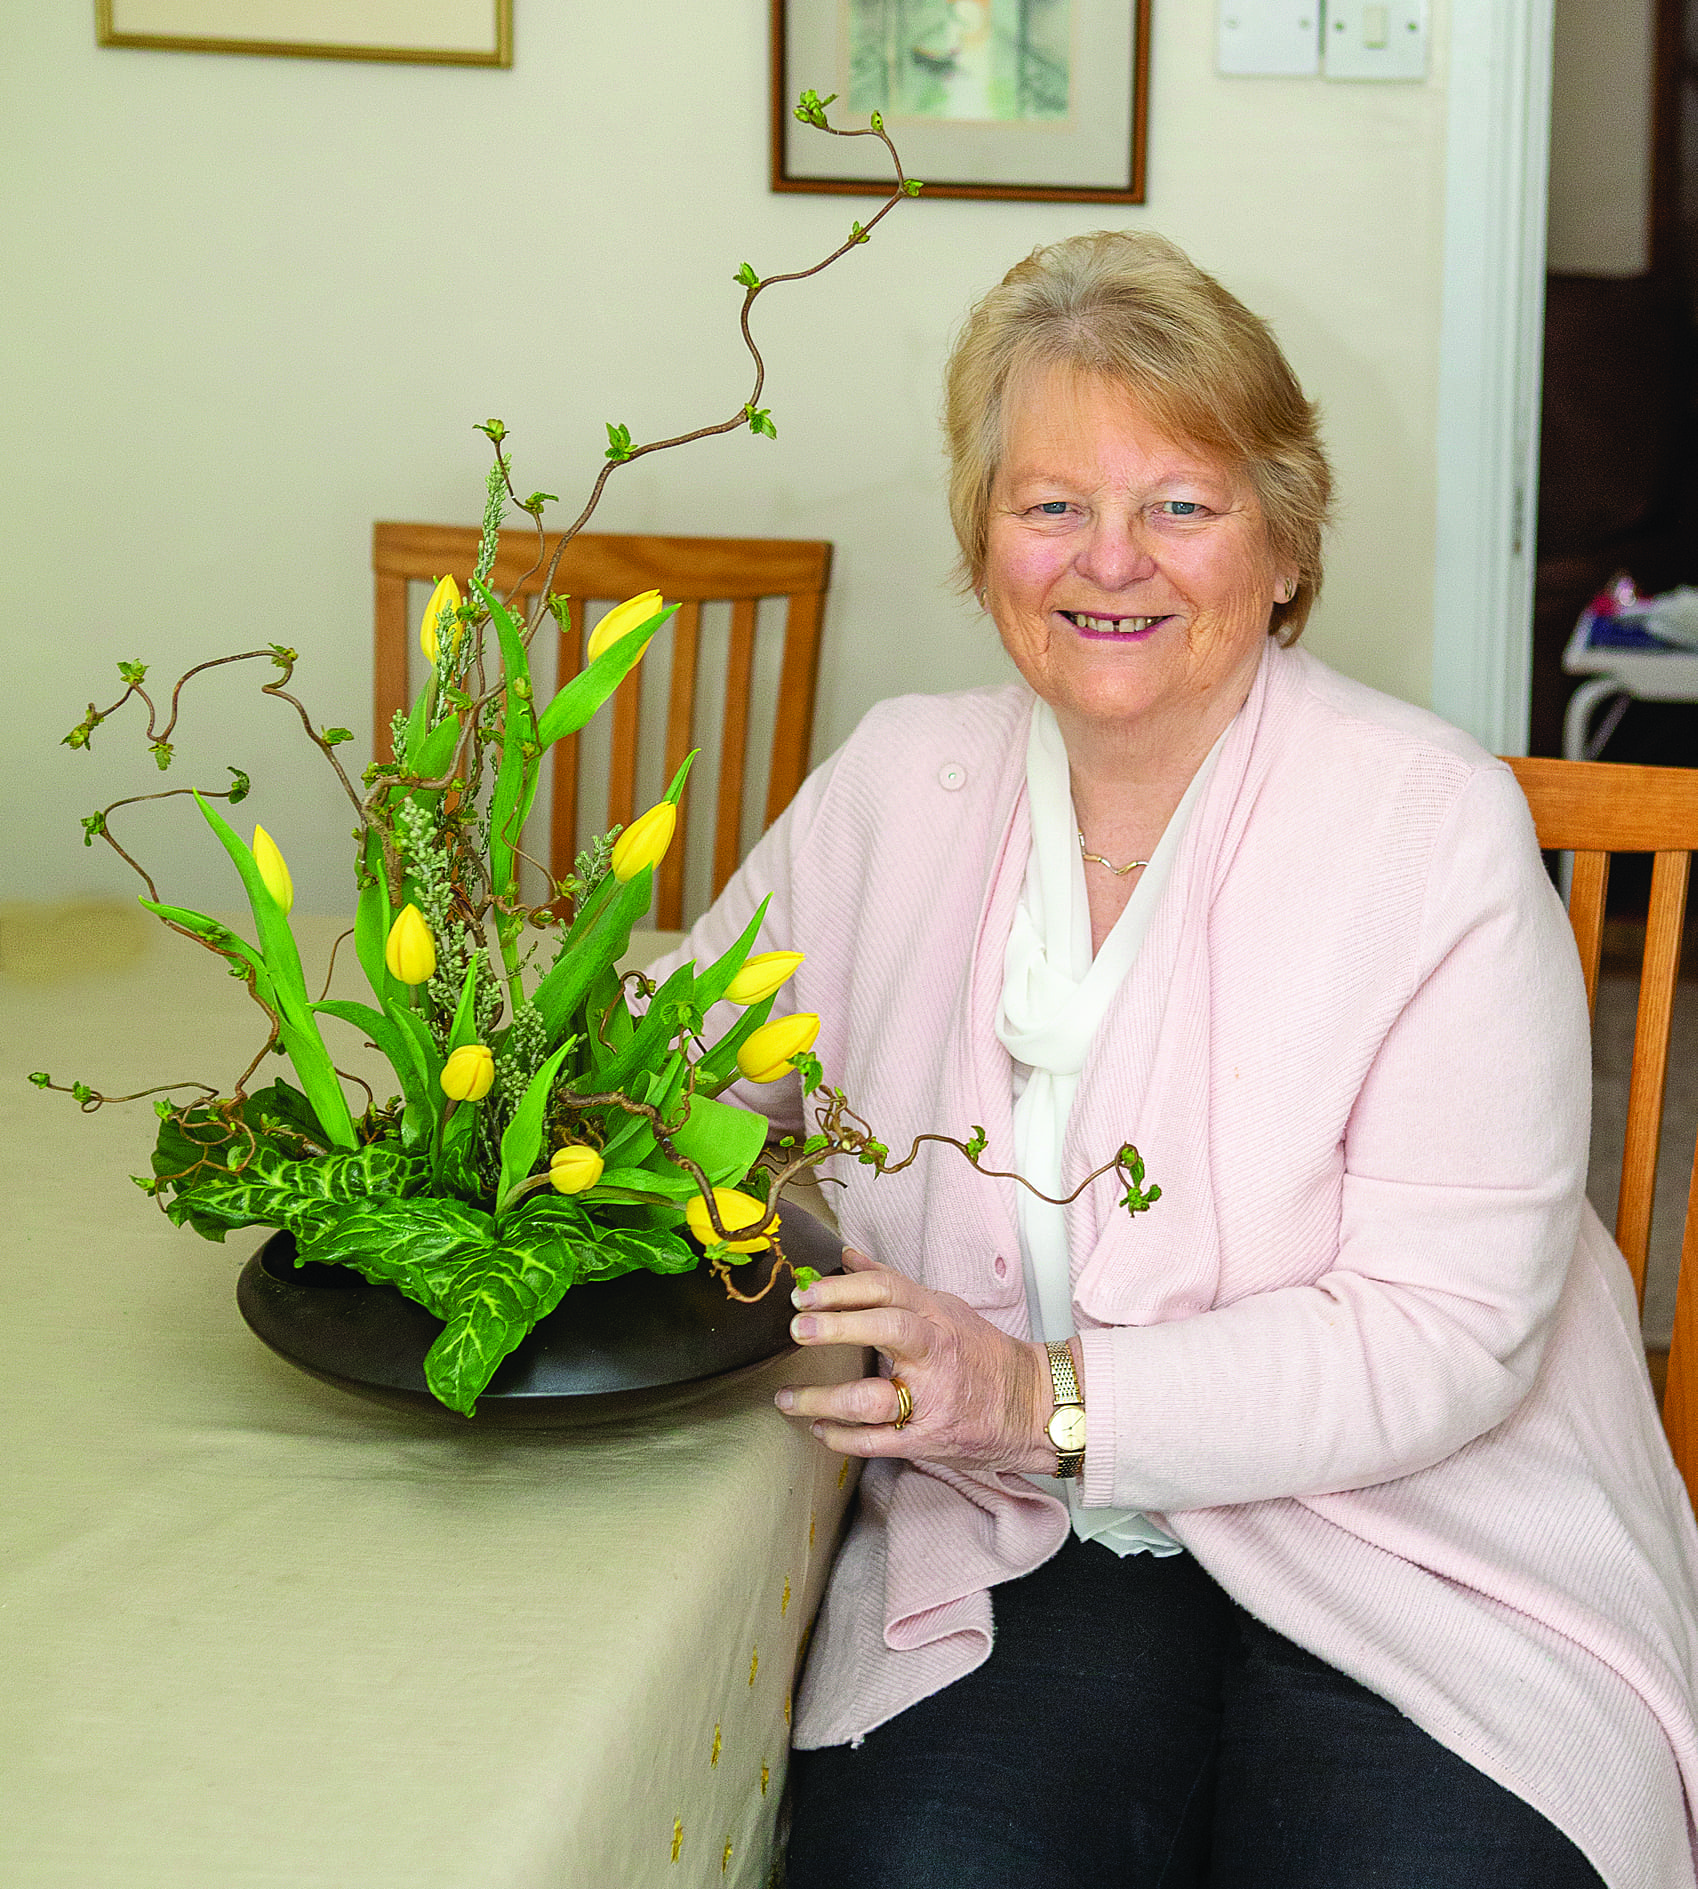 From Crawfordsburn to Jaipur!Margaret's scent of success takes her around the globe